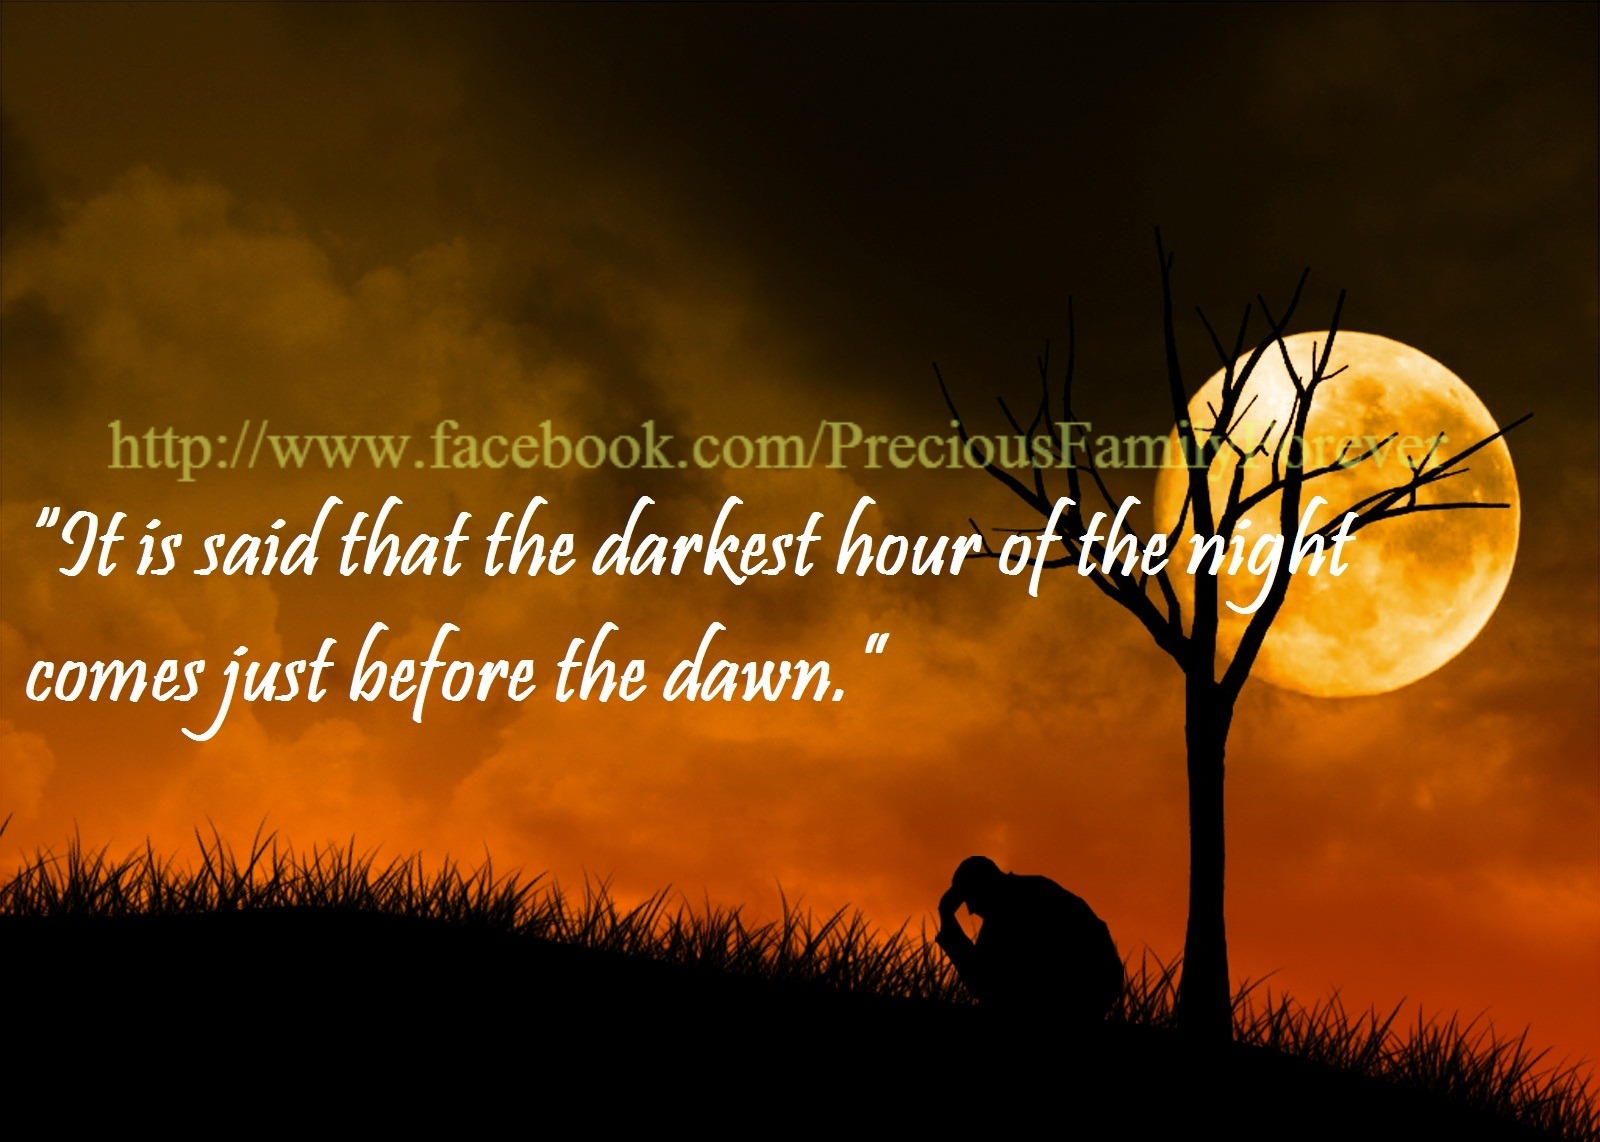 The Darkest Hour Is Just Before The Dawn